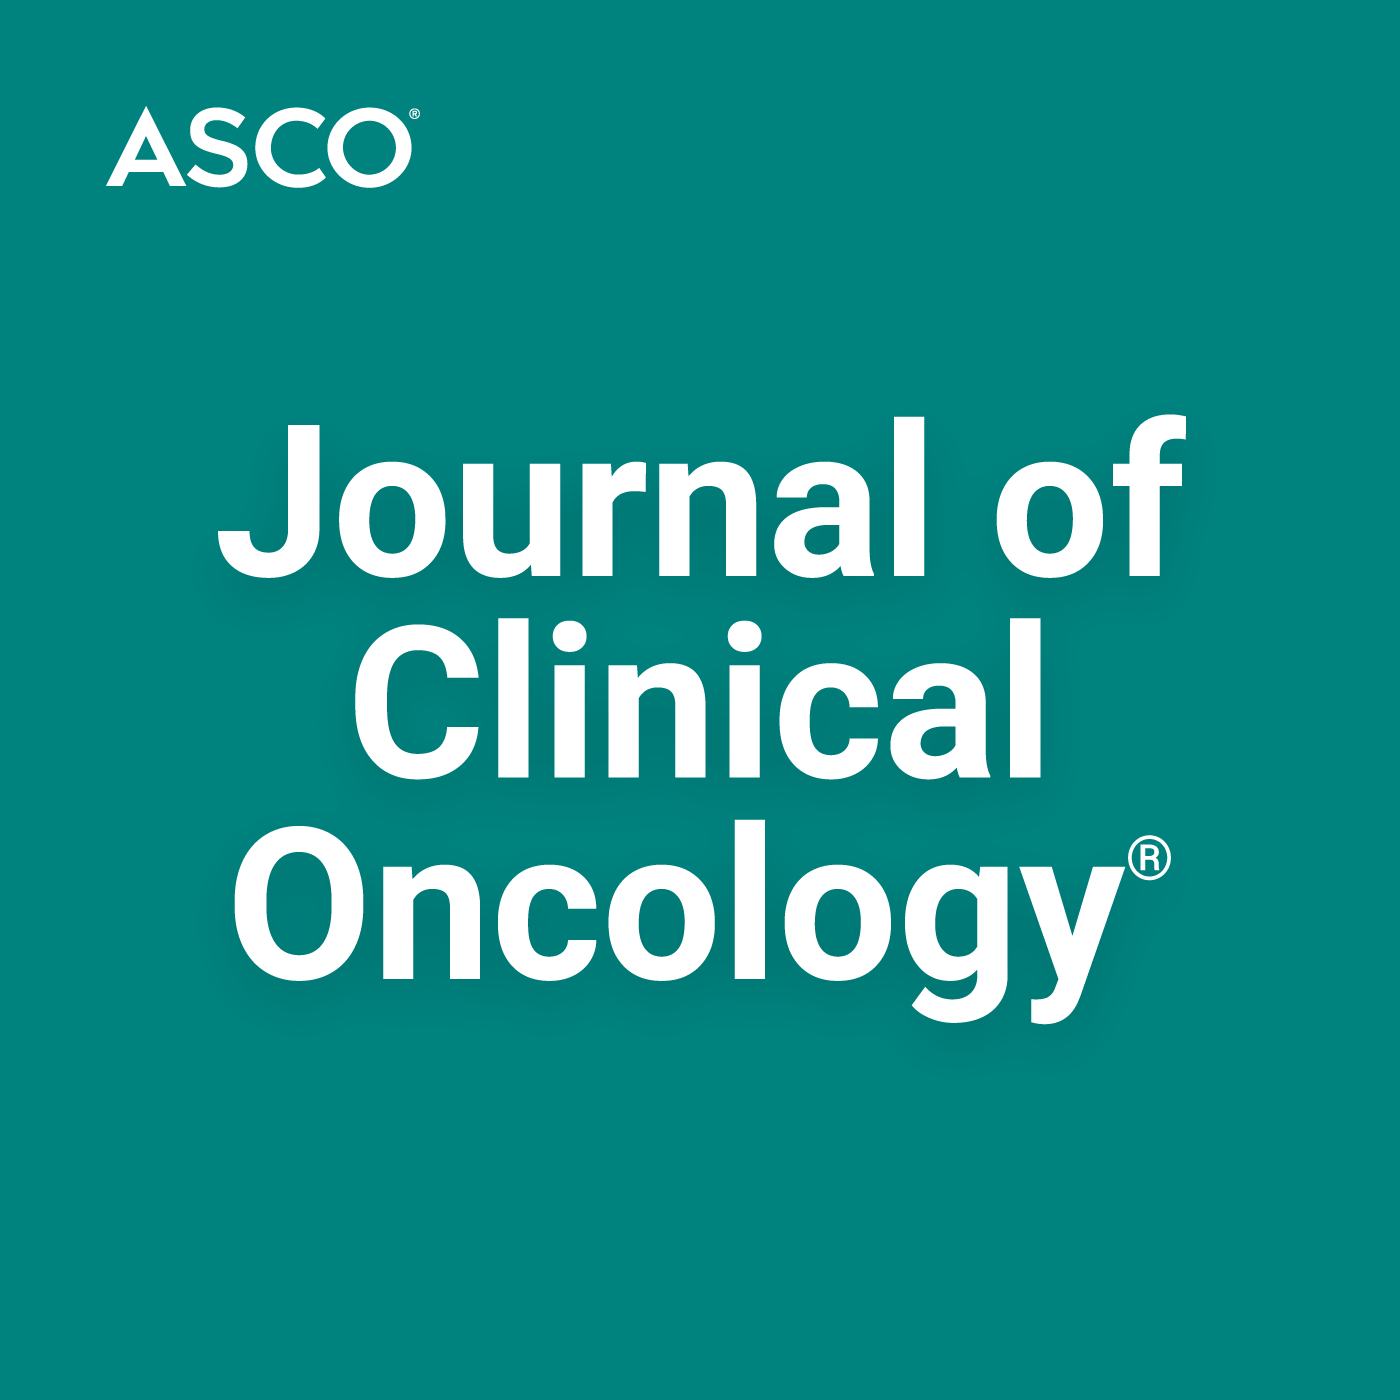 Journal of Clinical Oncology (JCO) Podcast show art